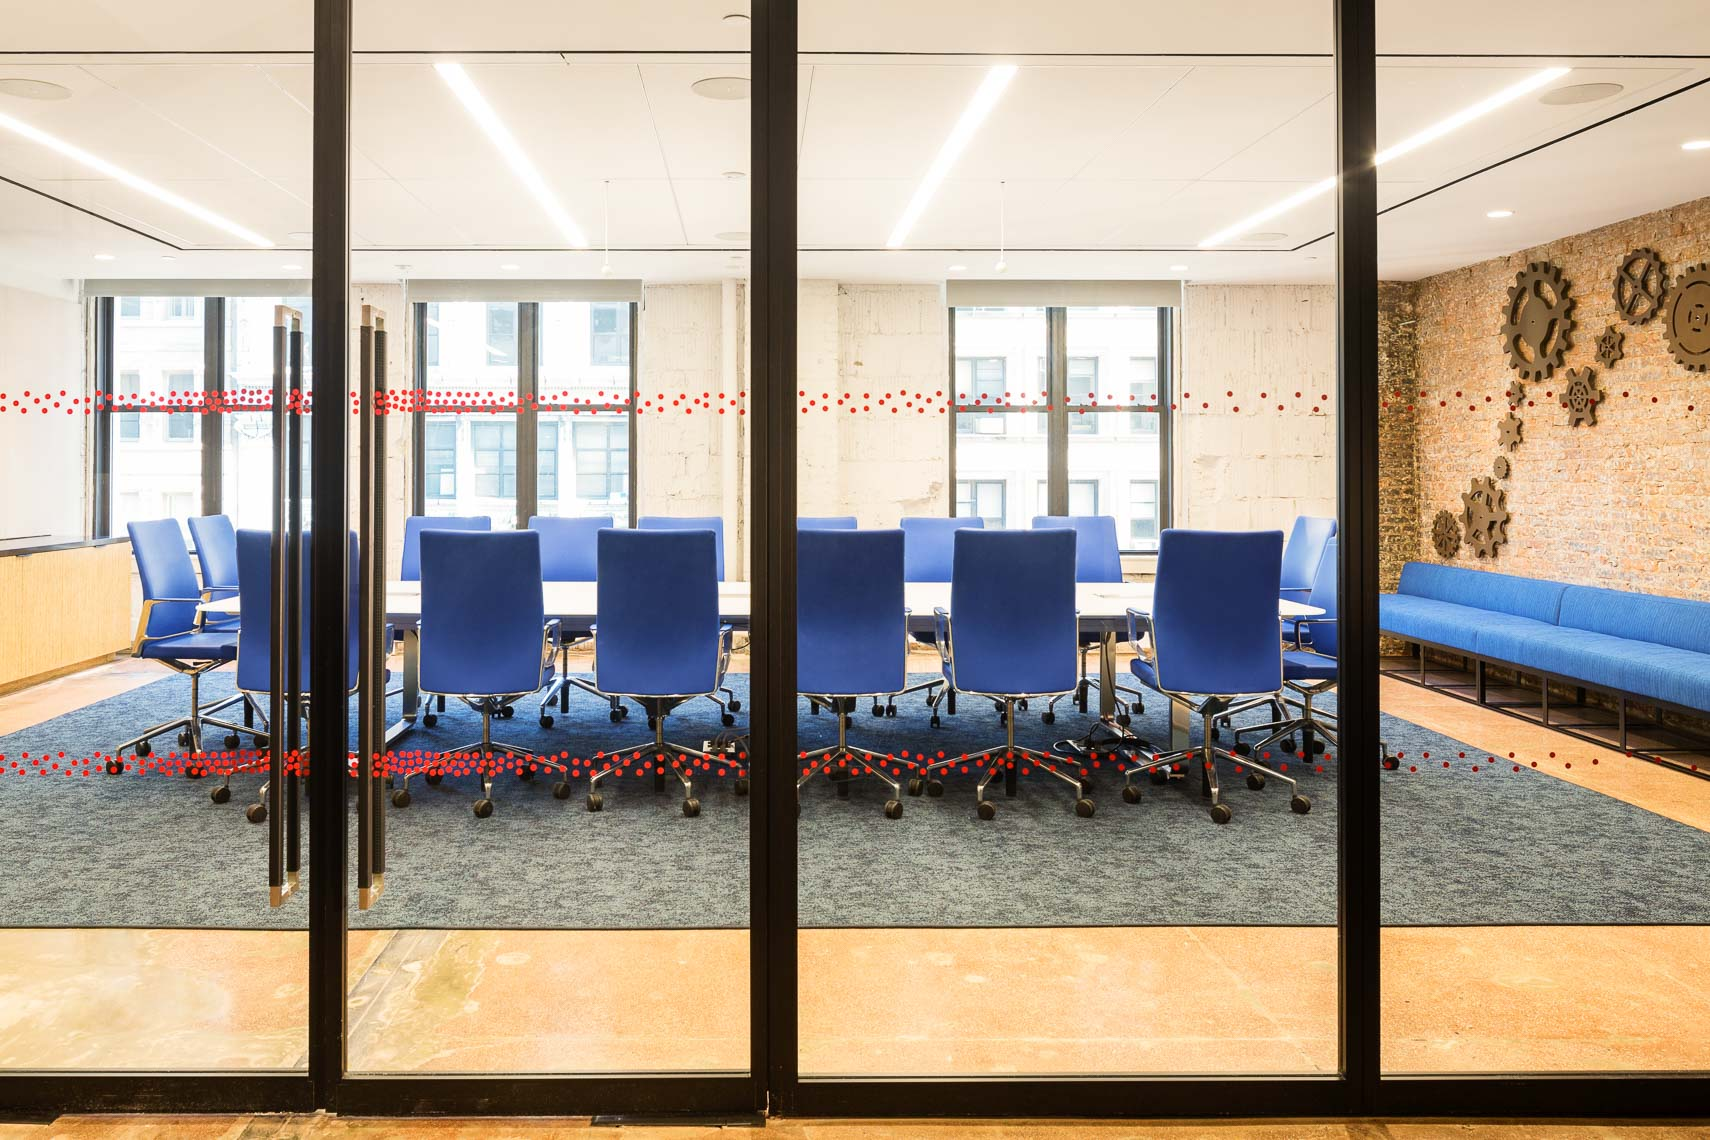 Glass walled conference room with blue chairs